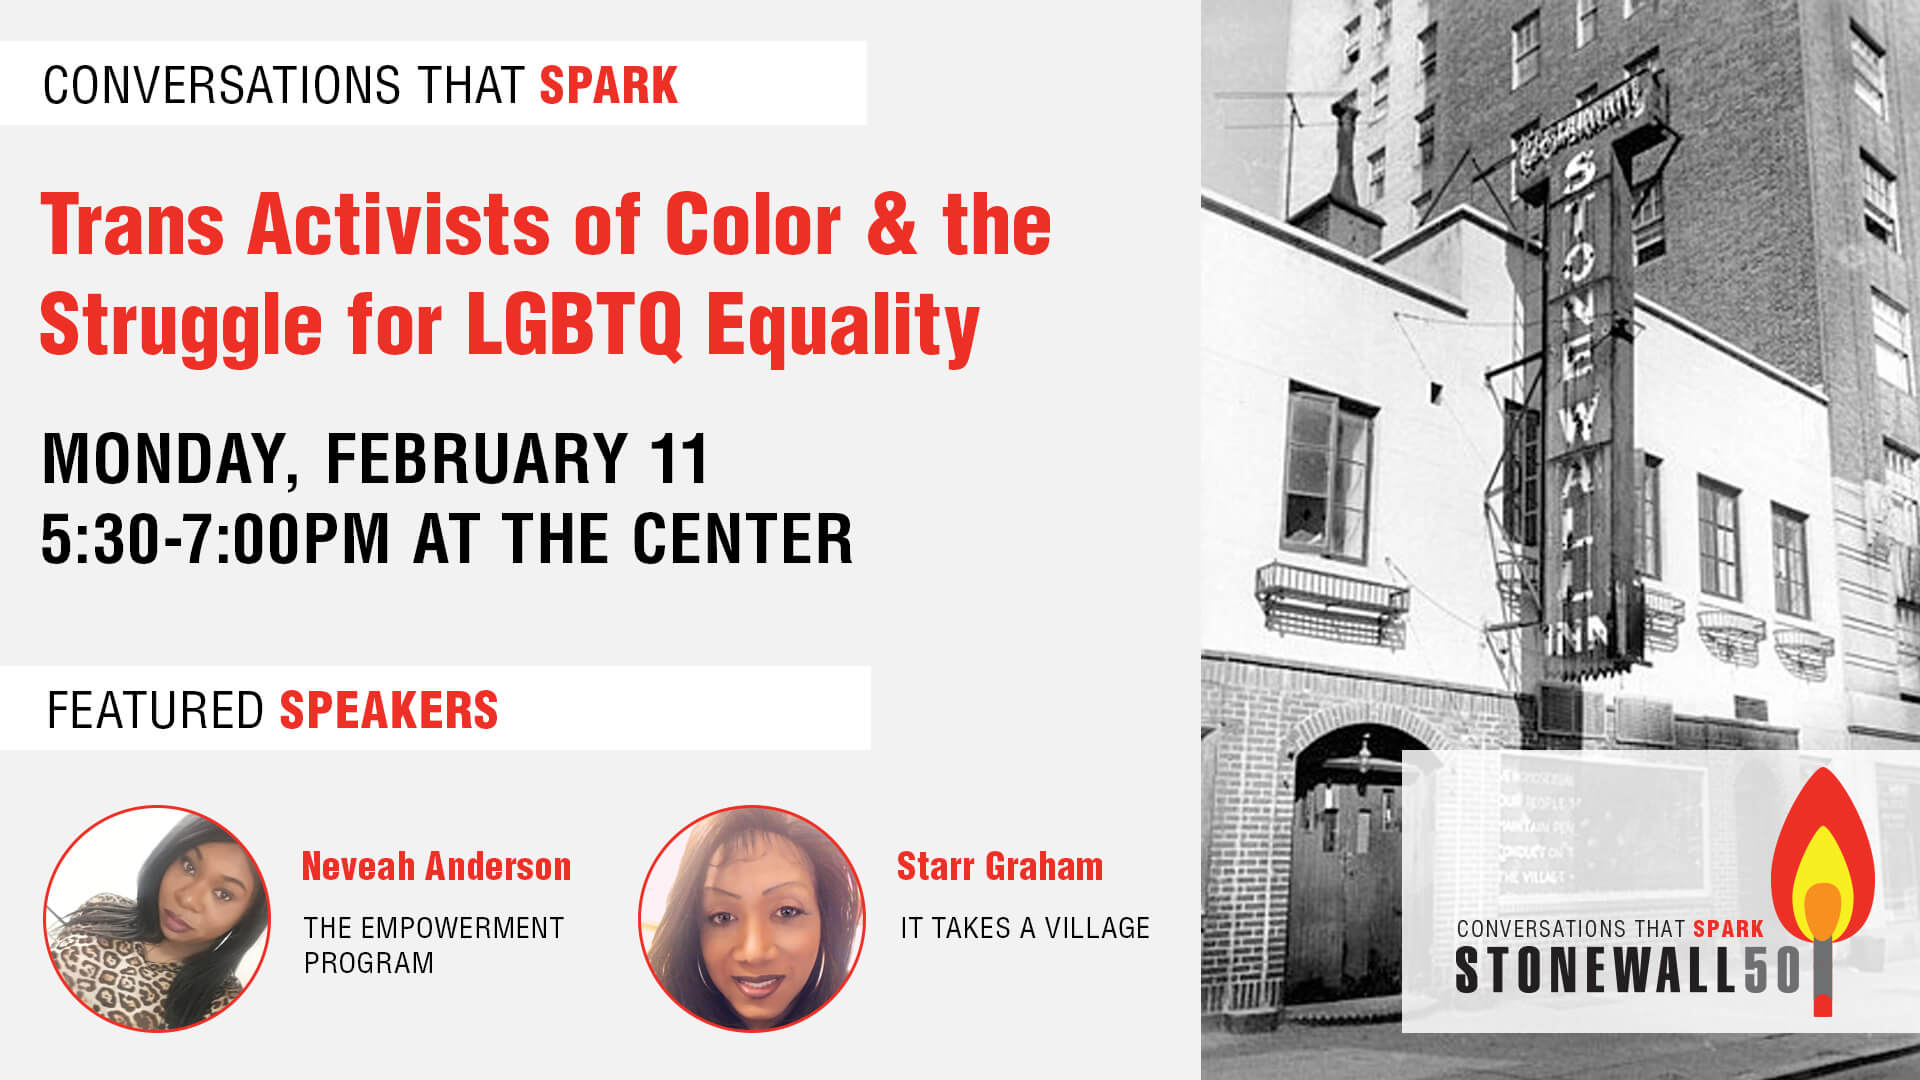 Conversations That Spark: Trans Activists of Color & the Struggle for LGBTQ Equality